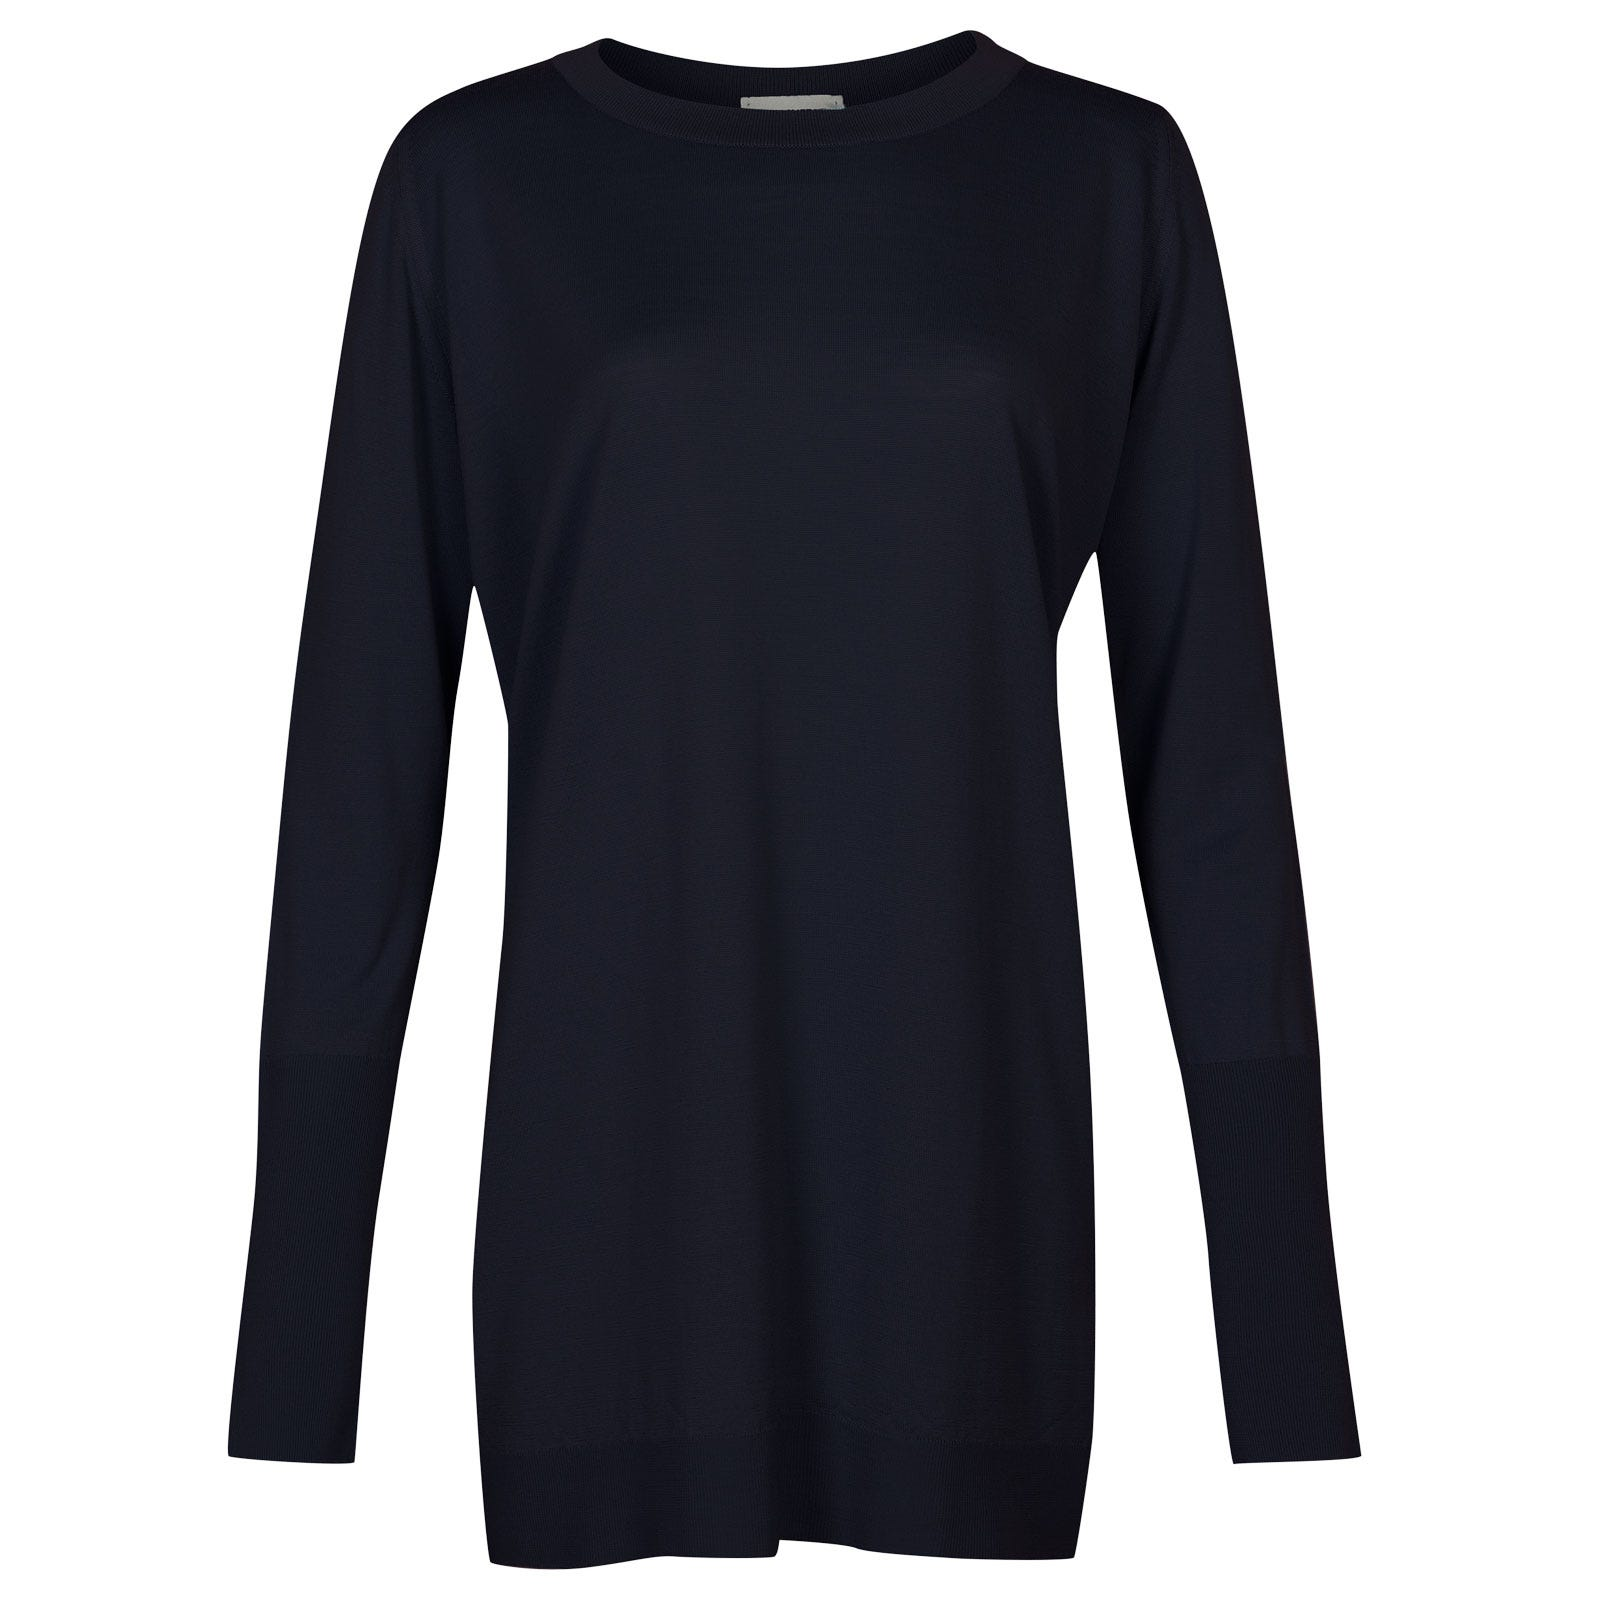 John Smedley molloy Merino Wool Sweater in Midnight-XL